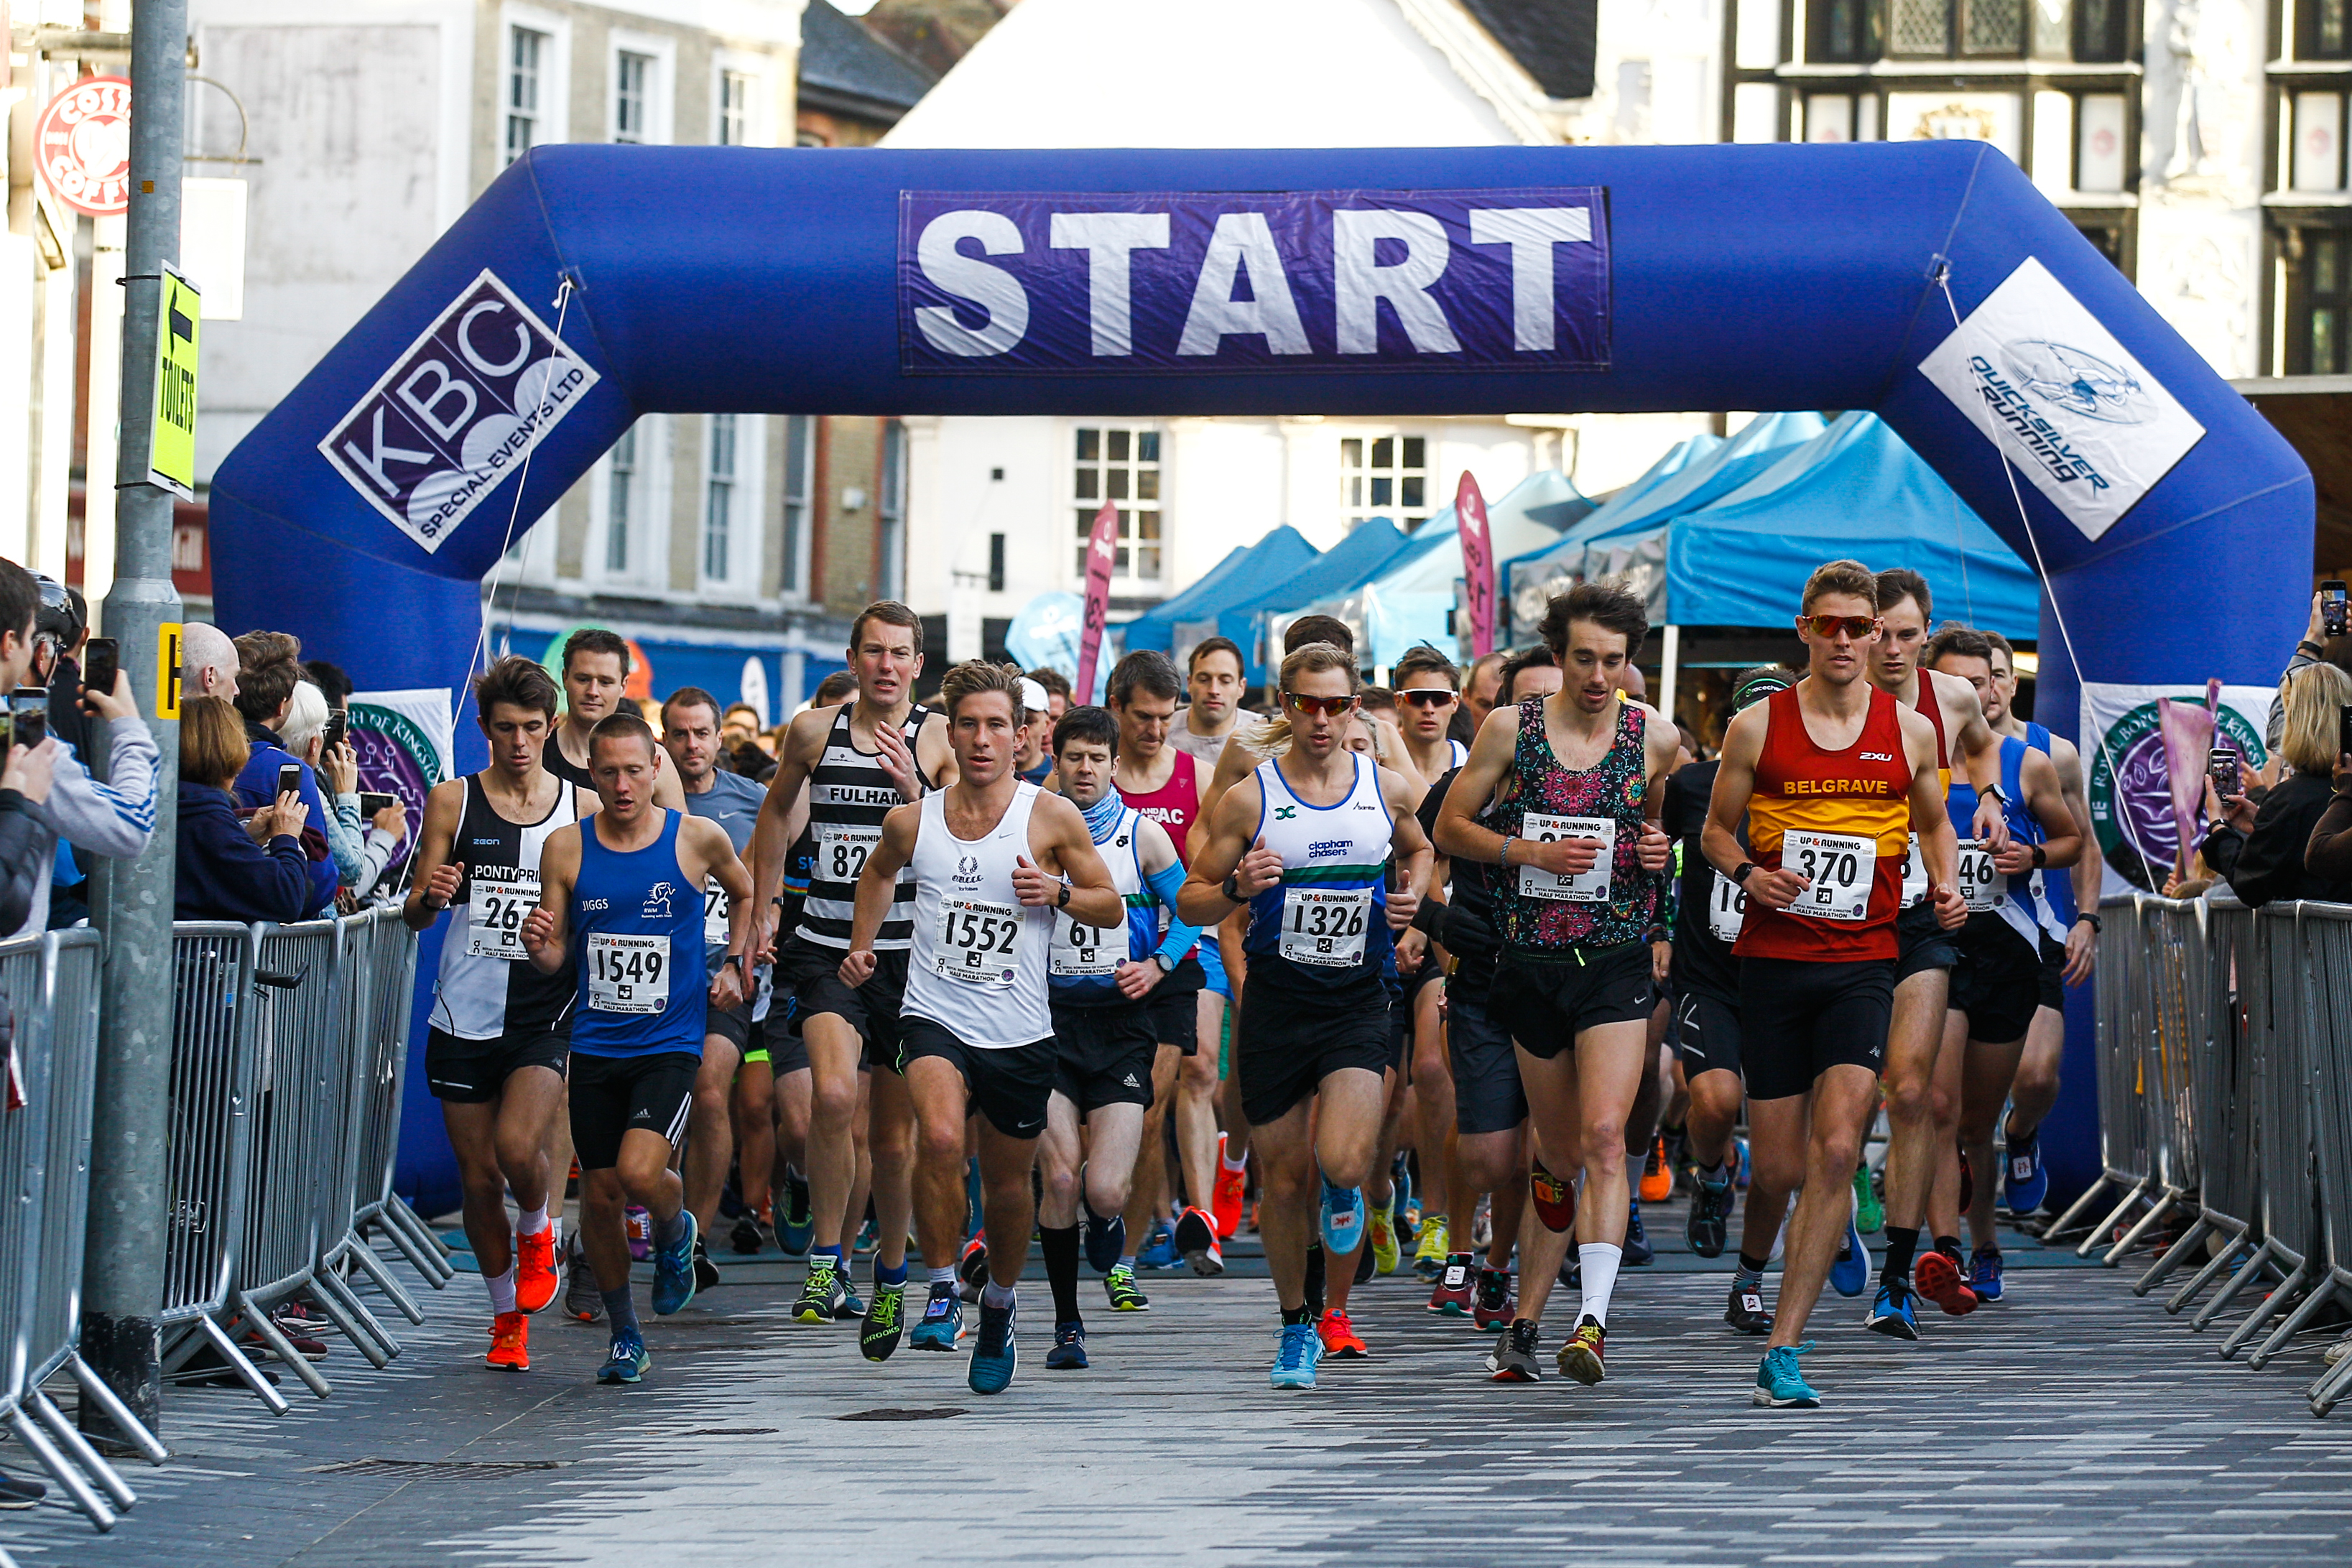 The Royal Borough of Kingston Half Marathon - cover image